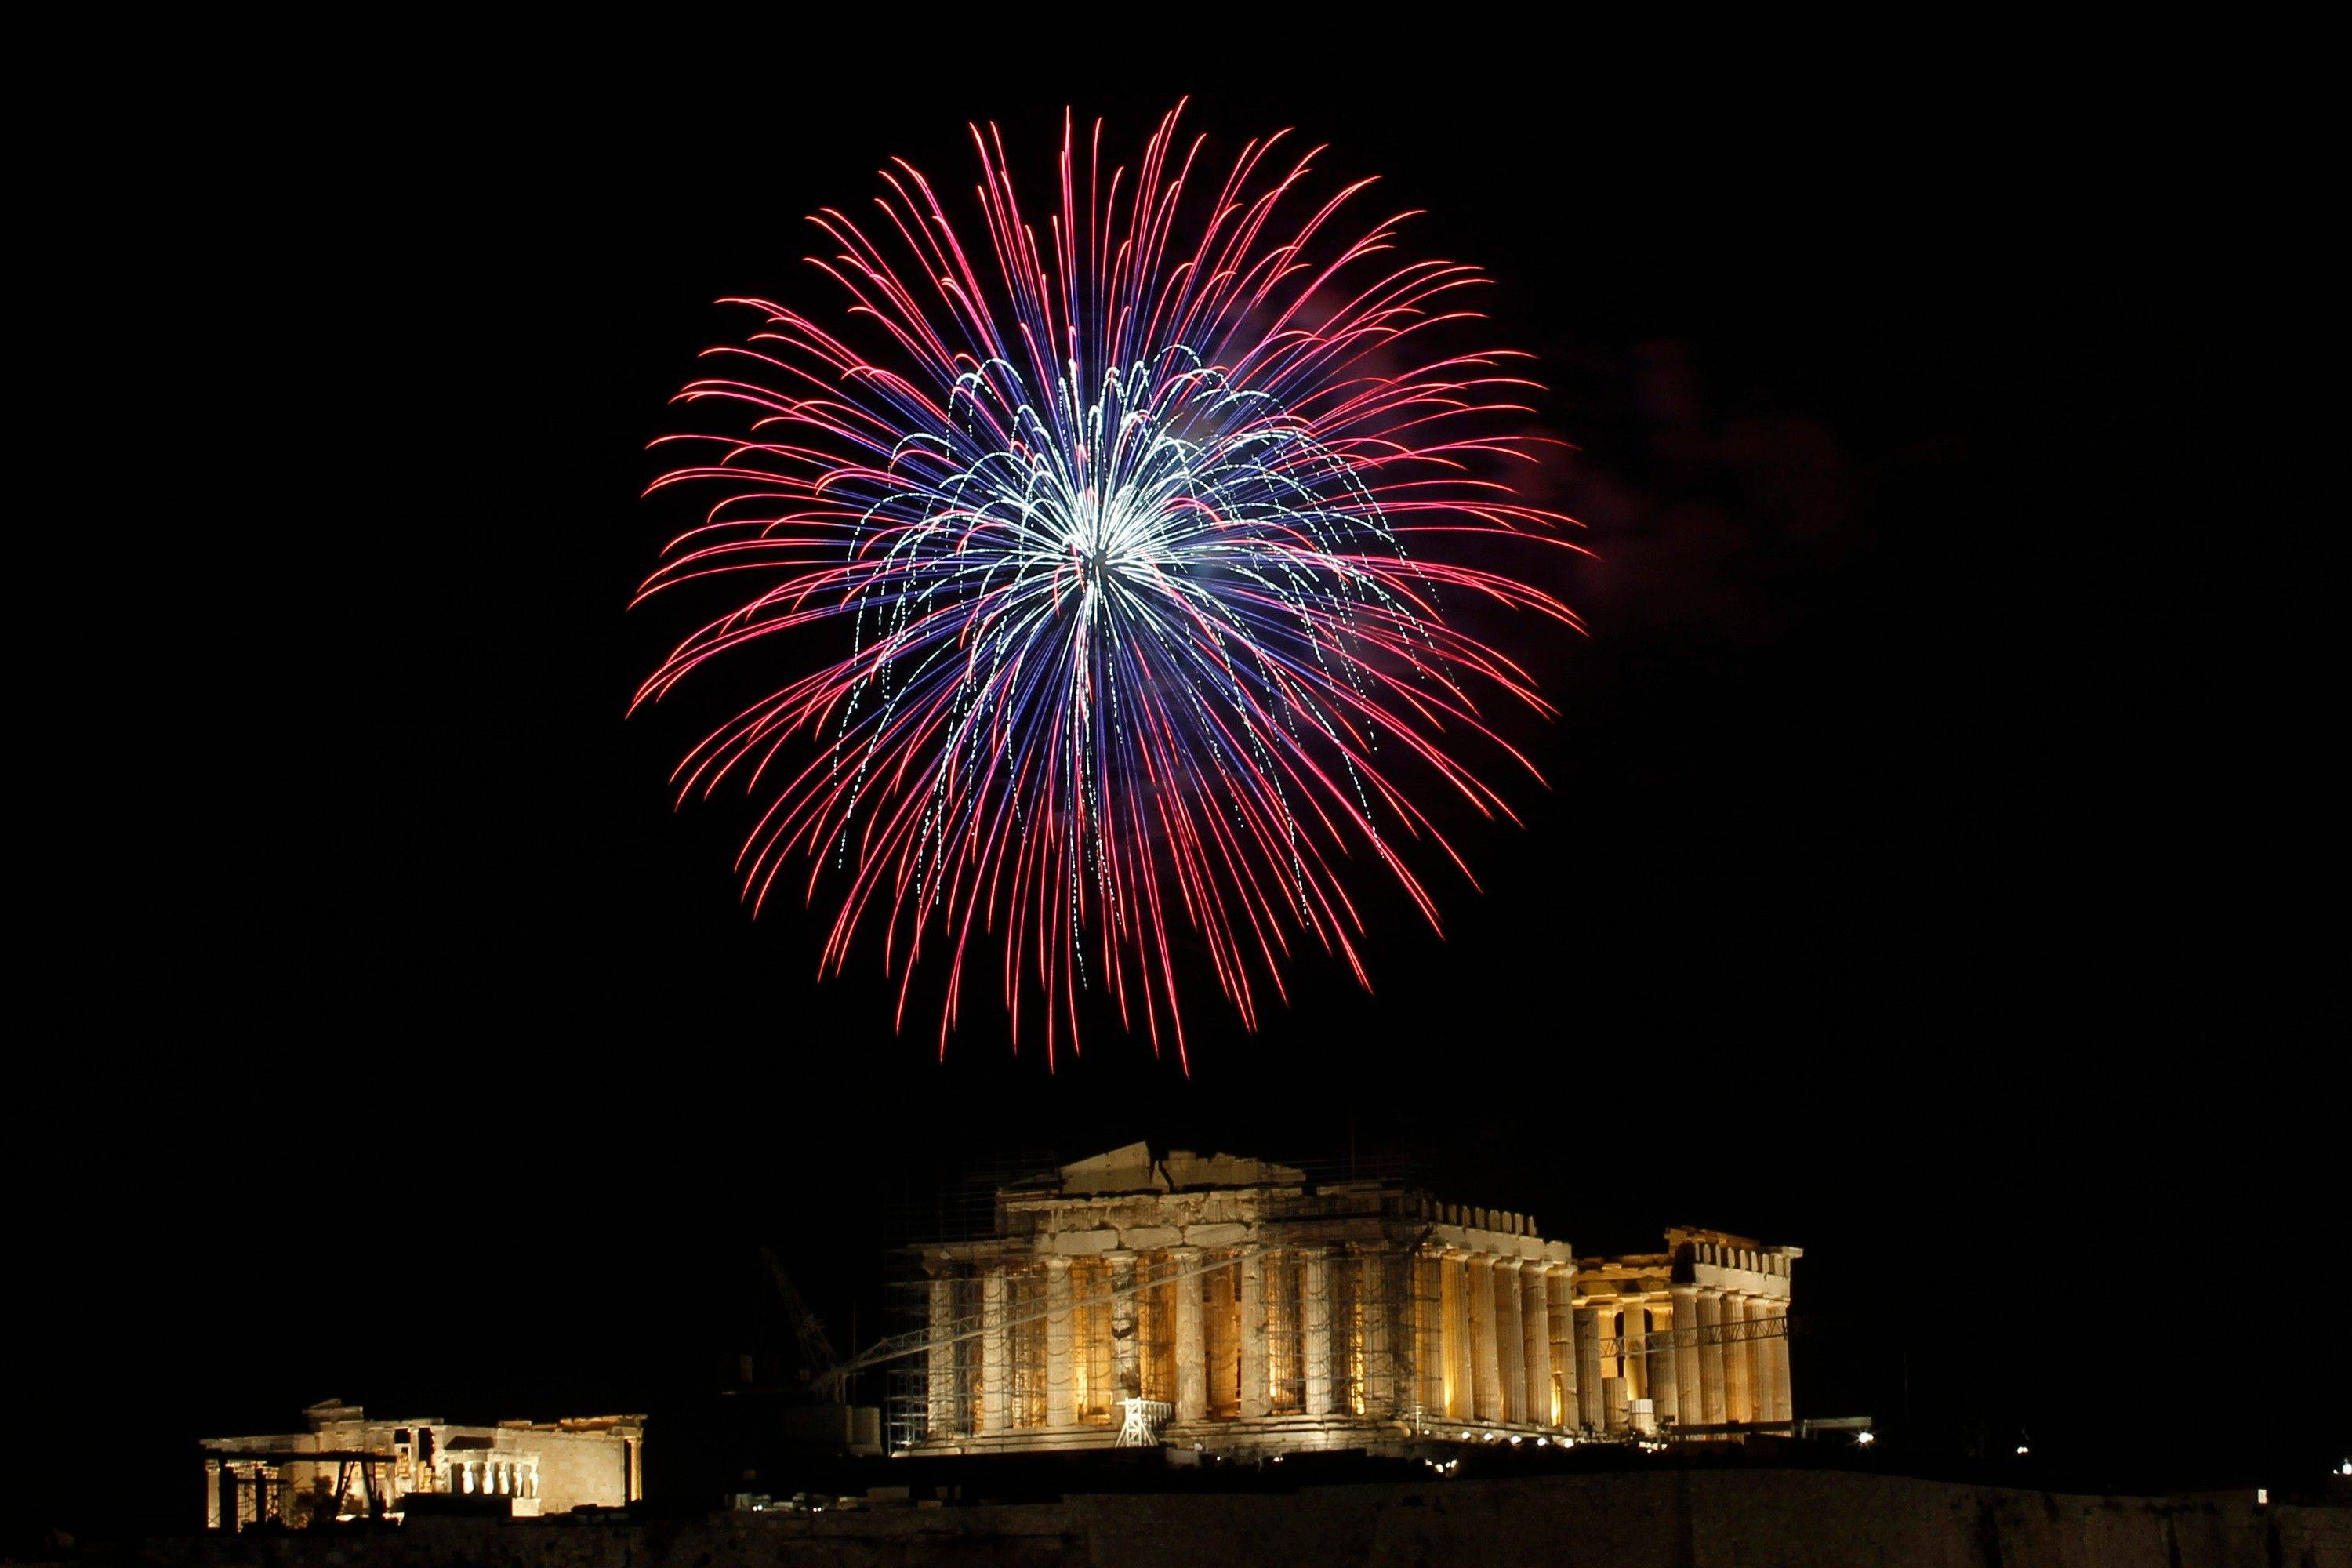 Fireworks explode over the ancient Acropolis Hill with the Parthenon temple during the New Year's celebrations in Athens, on Sunday, Jan. 1, 2012.